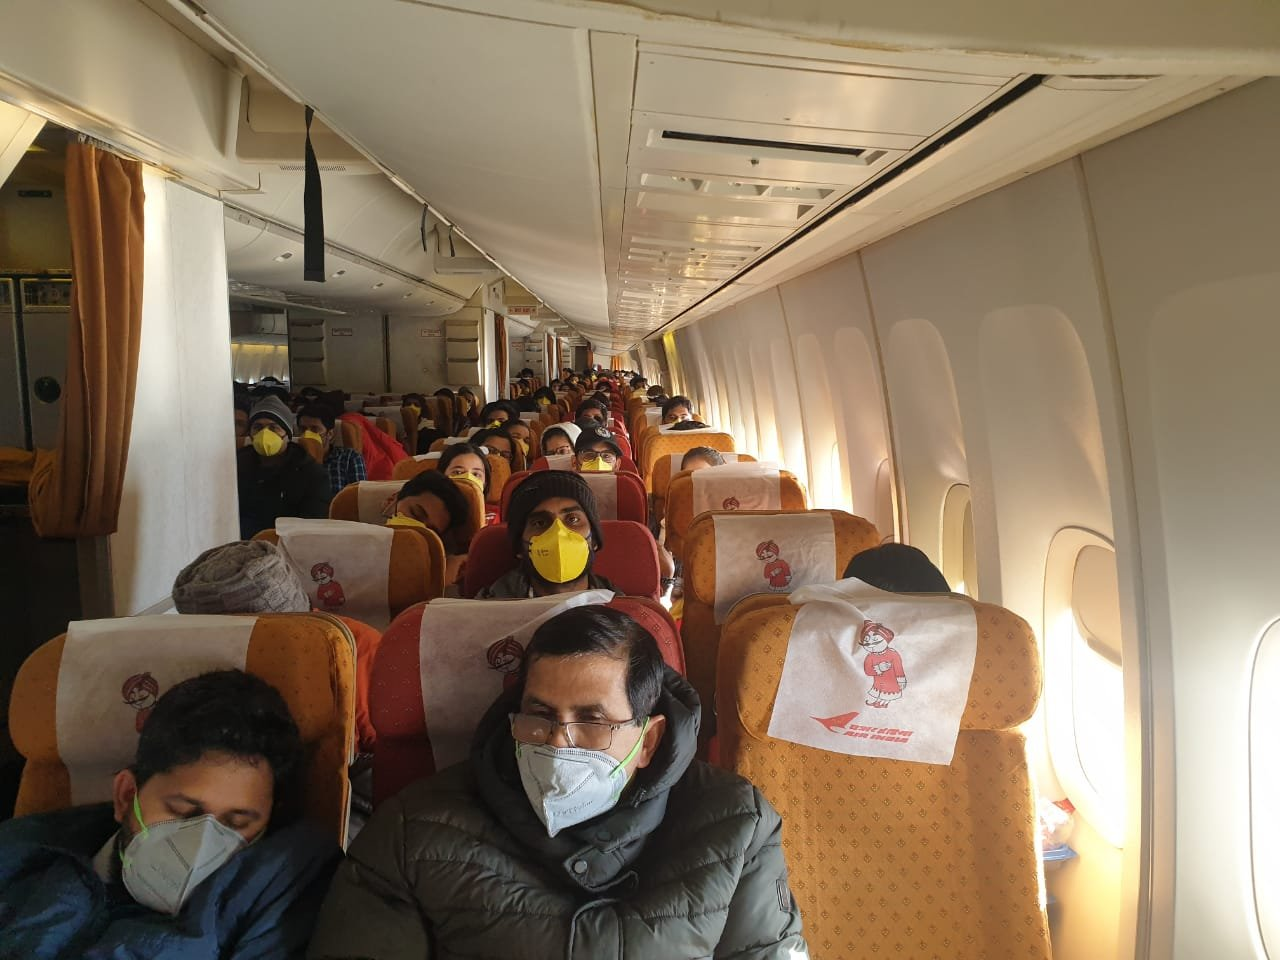 https://www.connectedtoindia.com/324-indians-evacuated-from-novel-coronavirus-hit-wuhan-6994.html